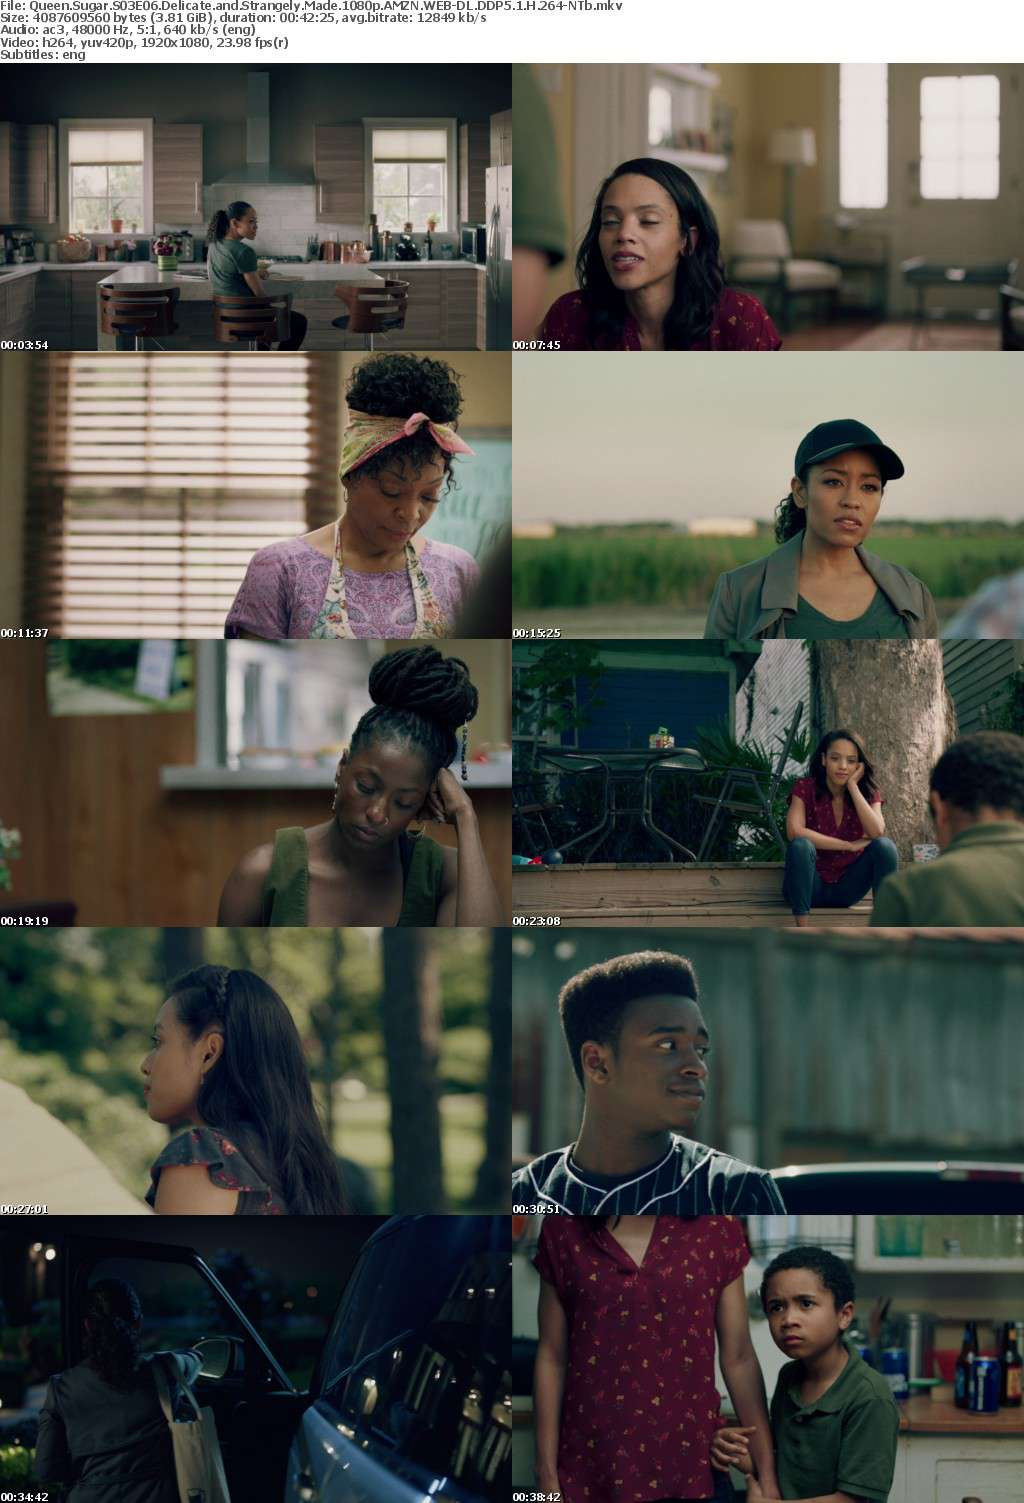 Queen Sugar S03E06 Delicate and Strangely Made 1080p AMZN WEB-DL DDP5 1 H 264-NTb